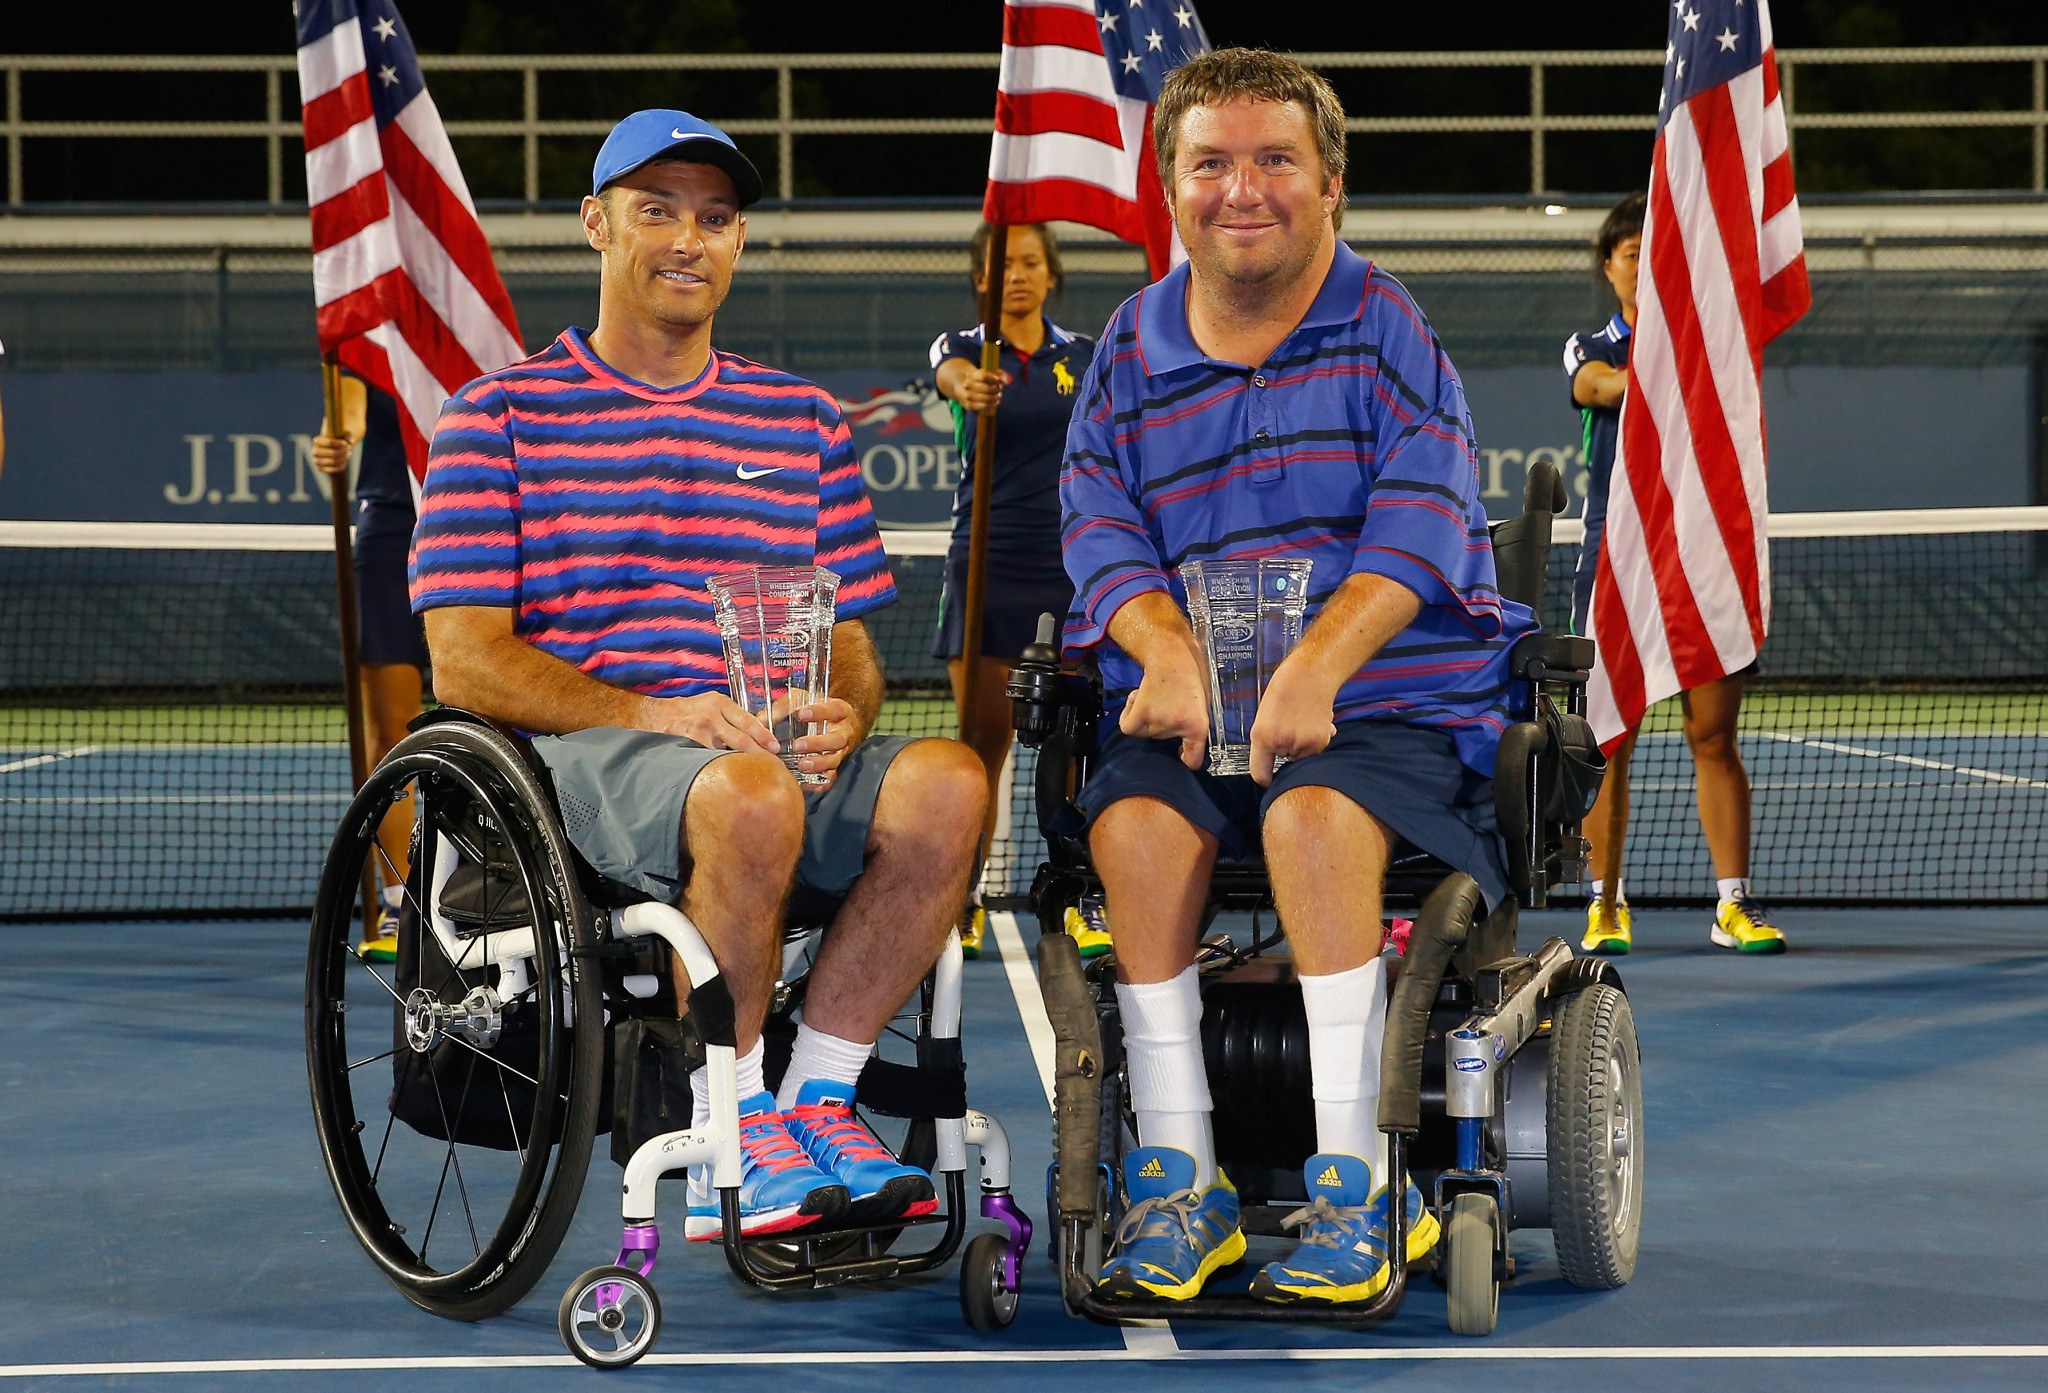 Taylor and Wagner win quads title for second successive year at Wheelchair Doubles Masters